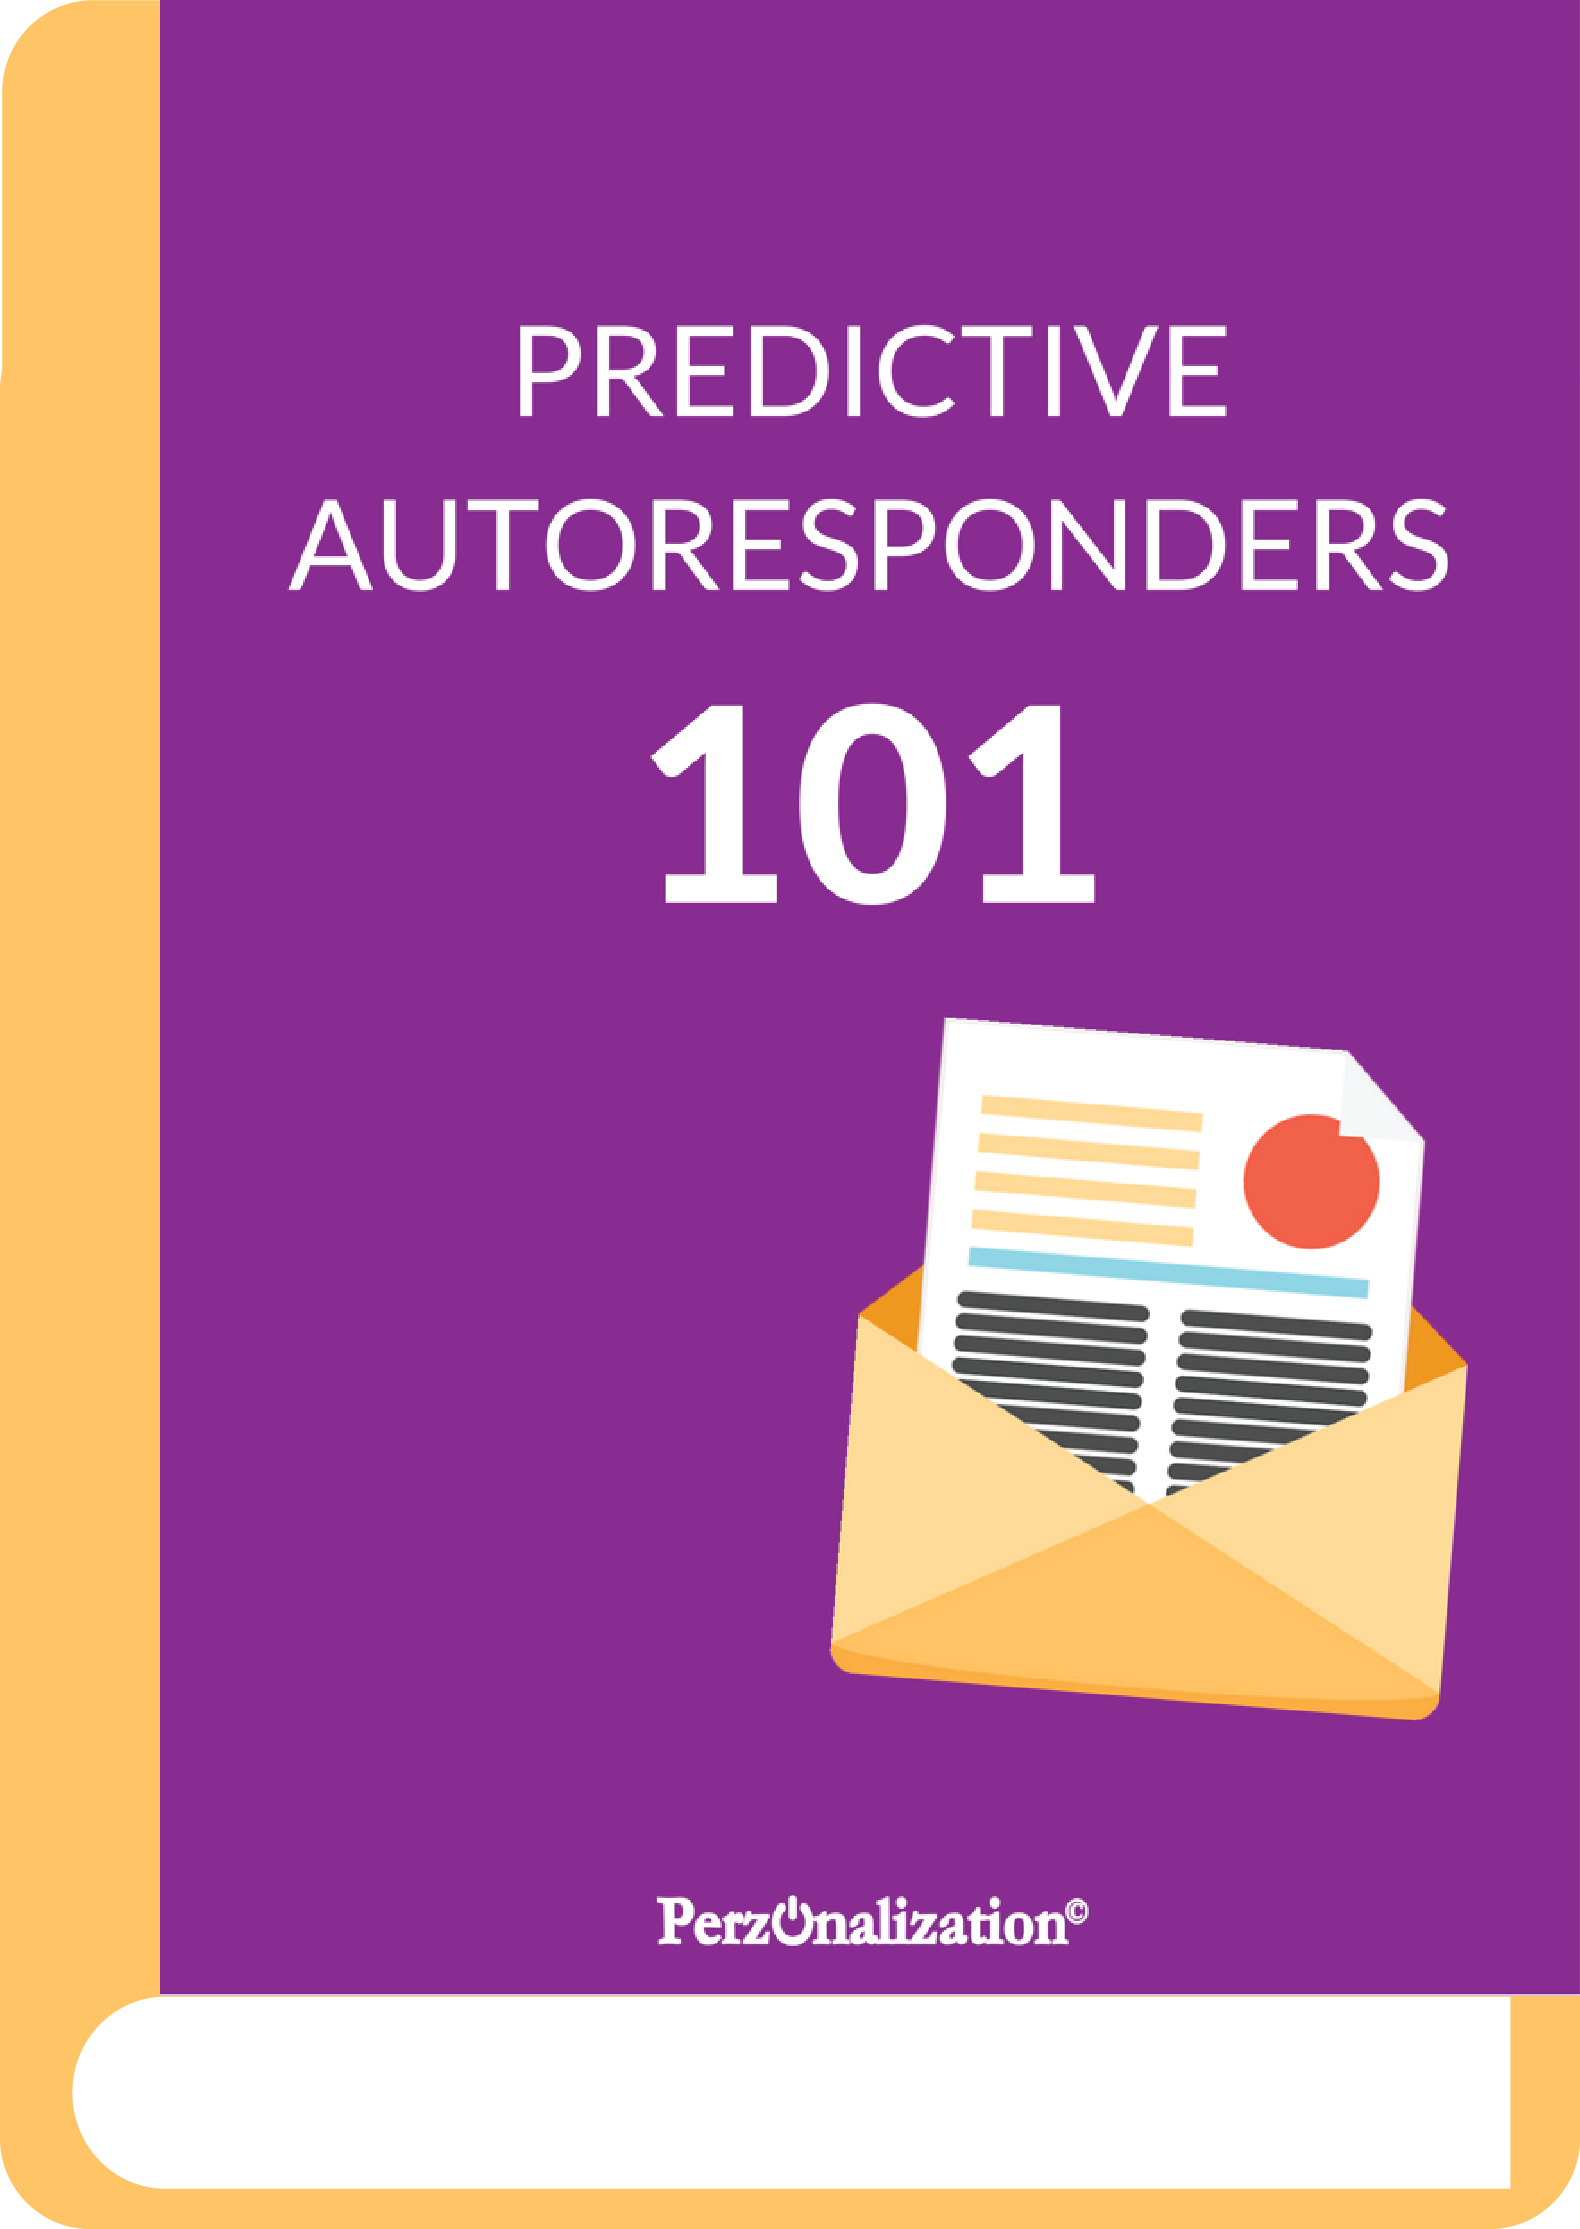 In today's email marketing environment, autoresponders mainly act as 'if this, then that' kind of tools but predictive autoresponders add a new layer on top of these. This eBook will help you get an introduction on predictive autoresponders and how to use them on your SMB eCommerce website.